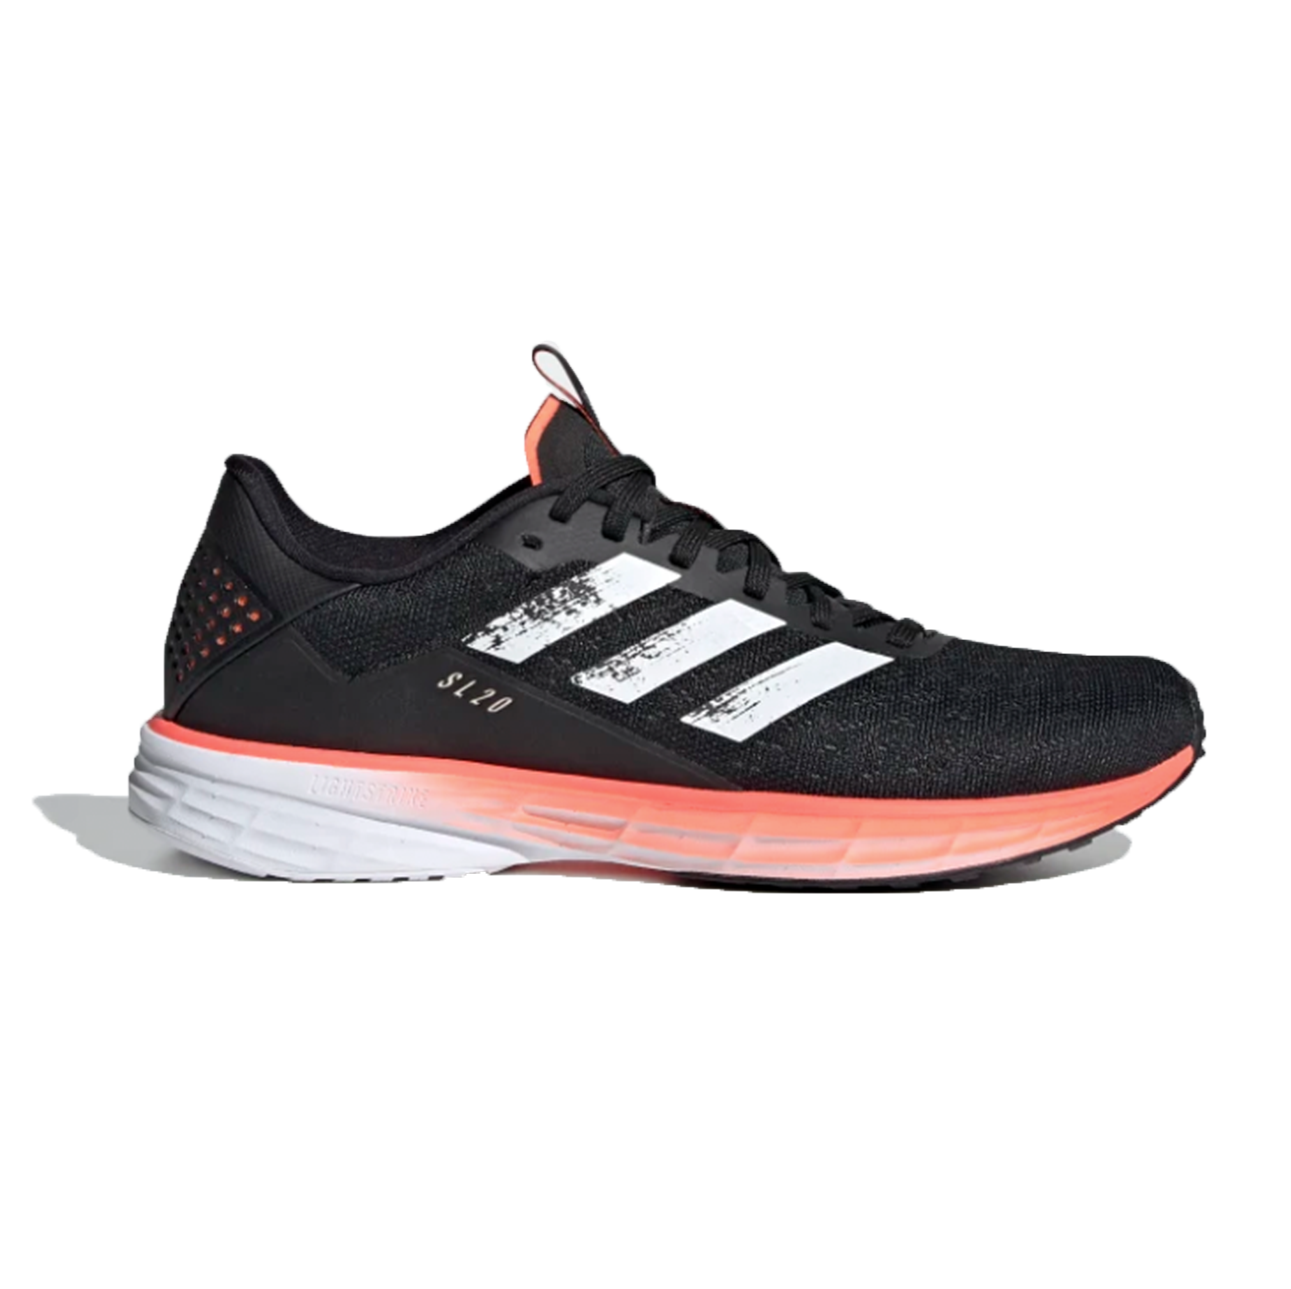 adidas release the SL20, a new running